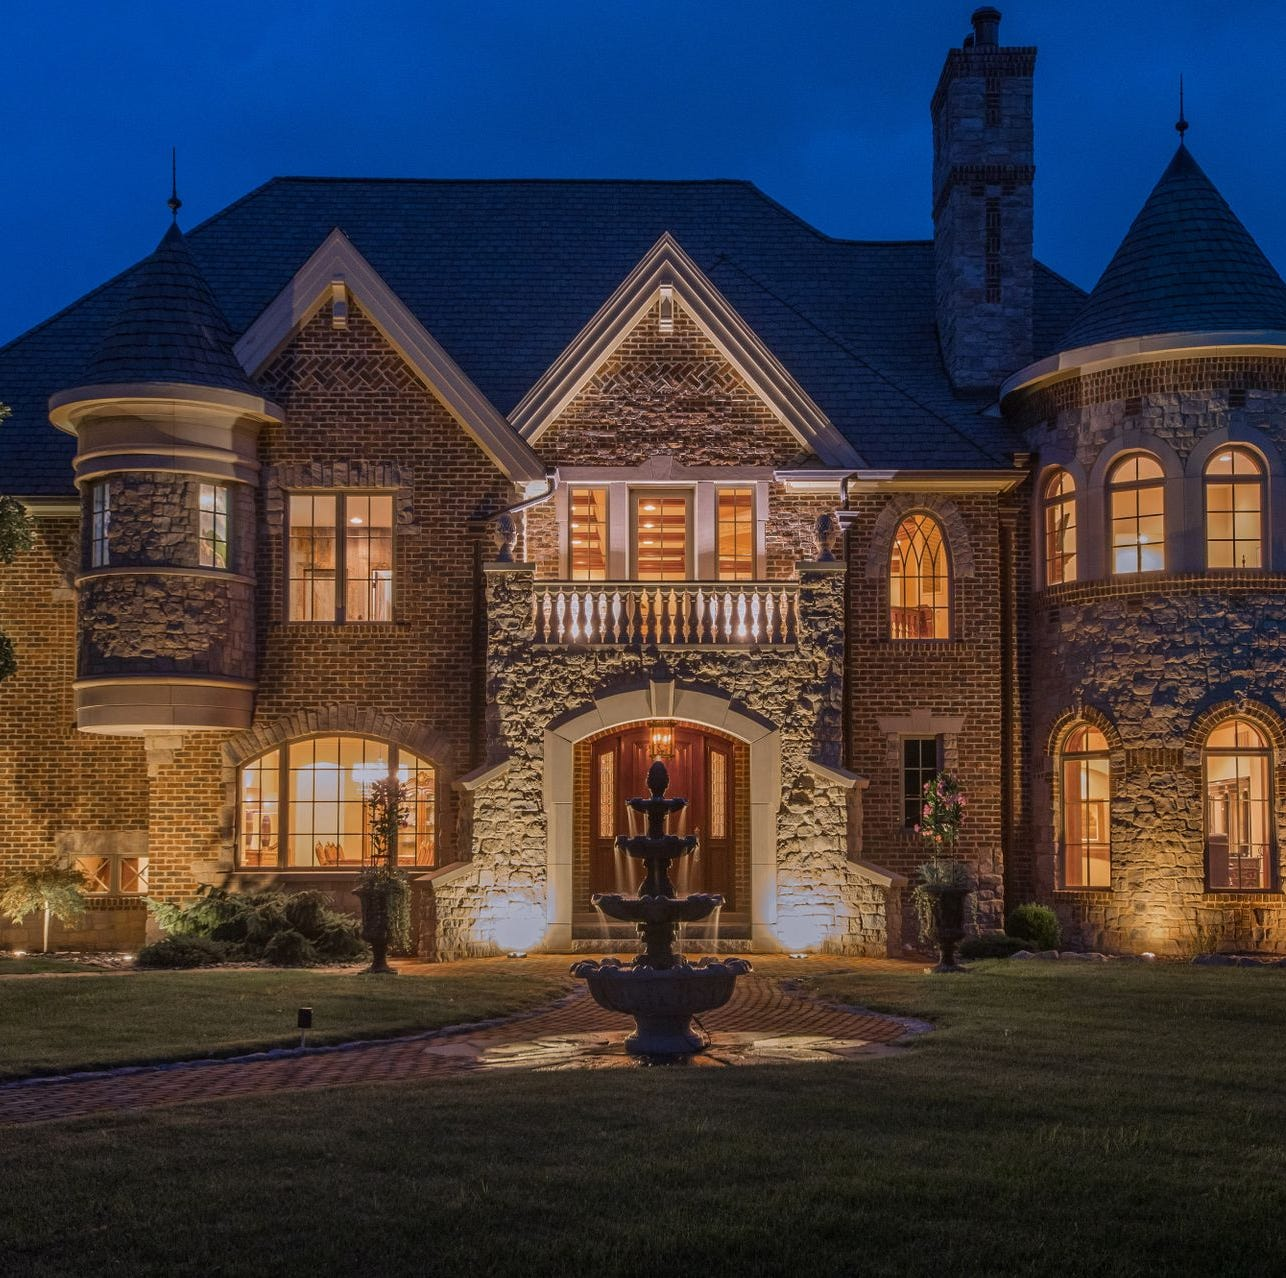 Want to buy this luxurious local estate? It'll cost you $2.79 million